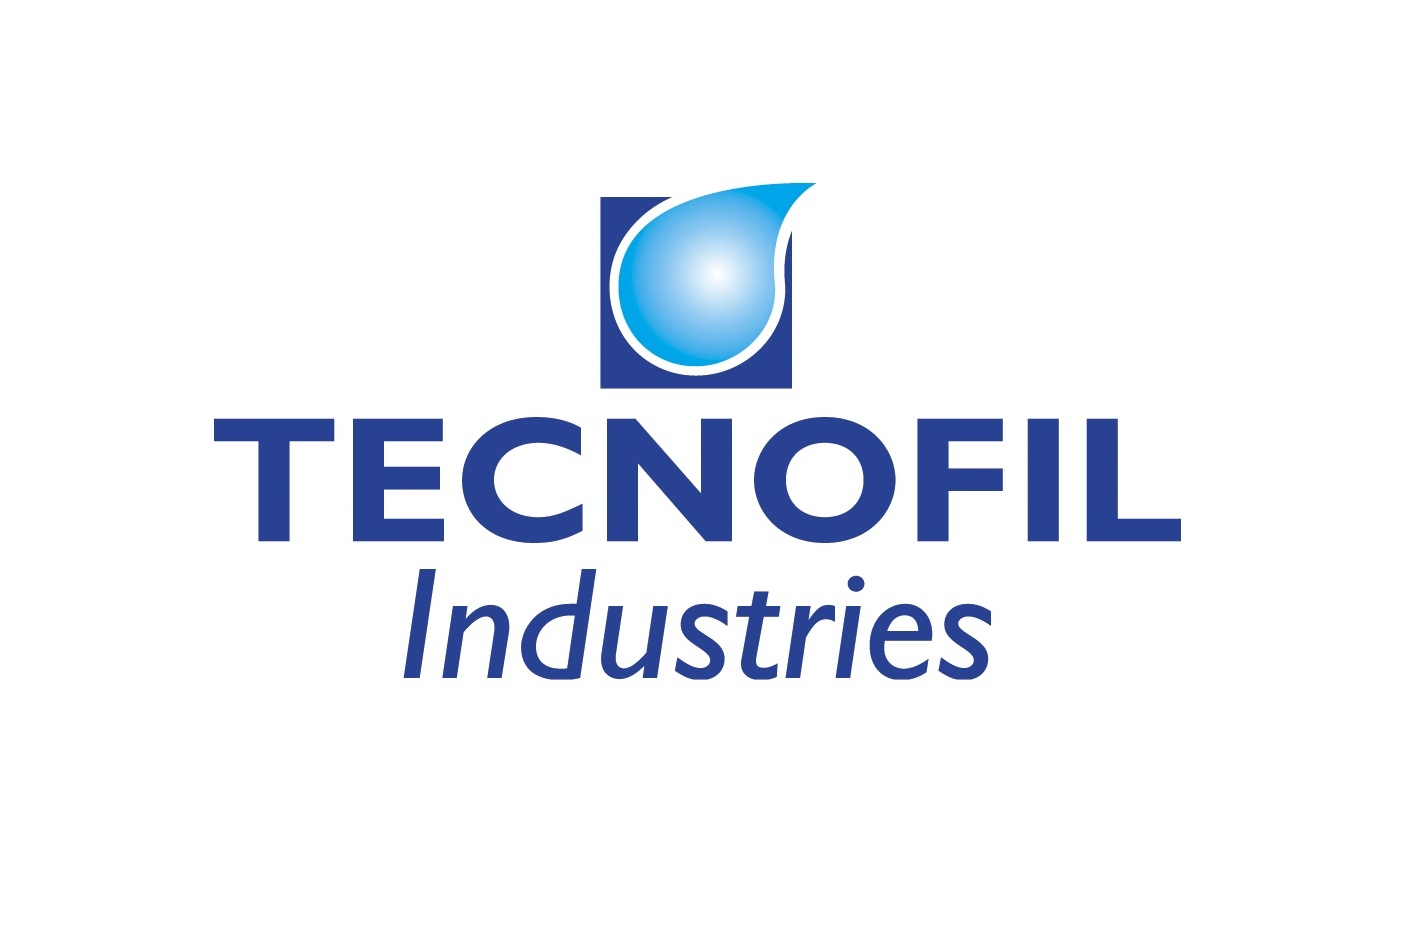 TECNOFIL INDUSTRIES